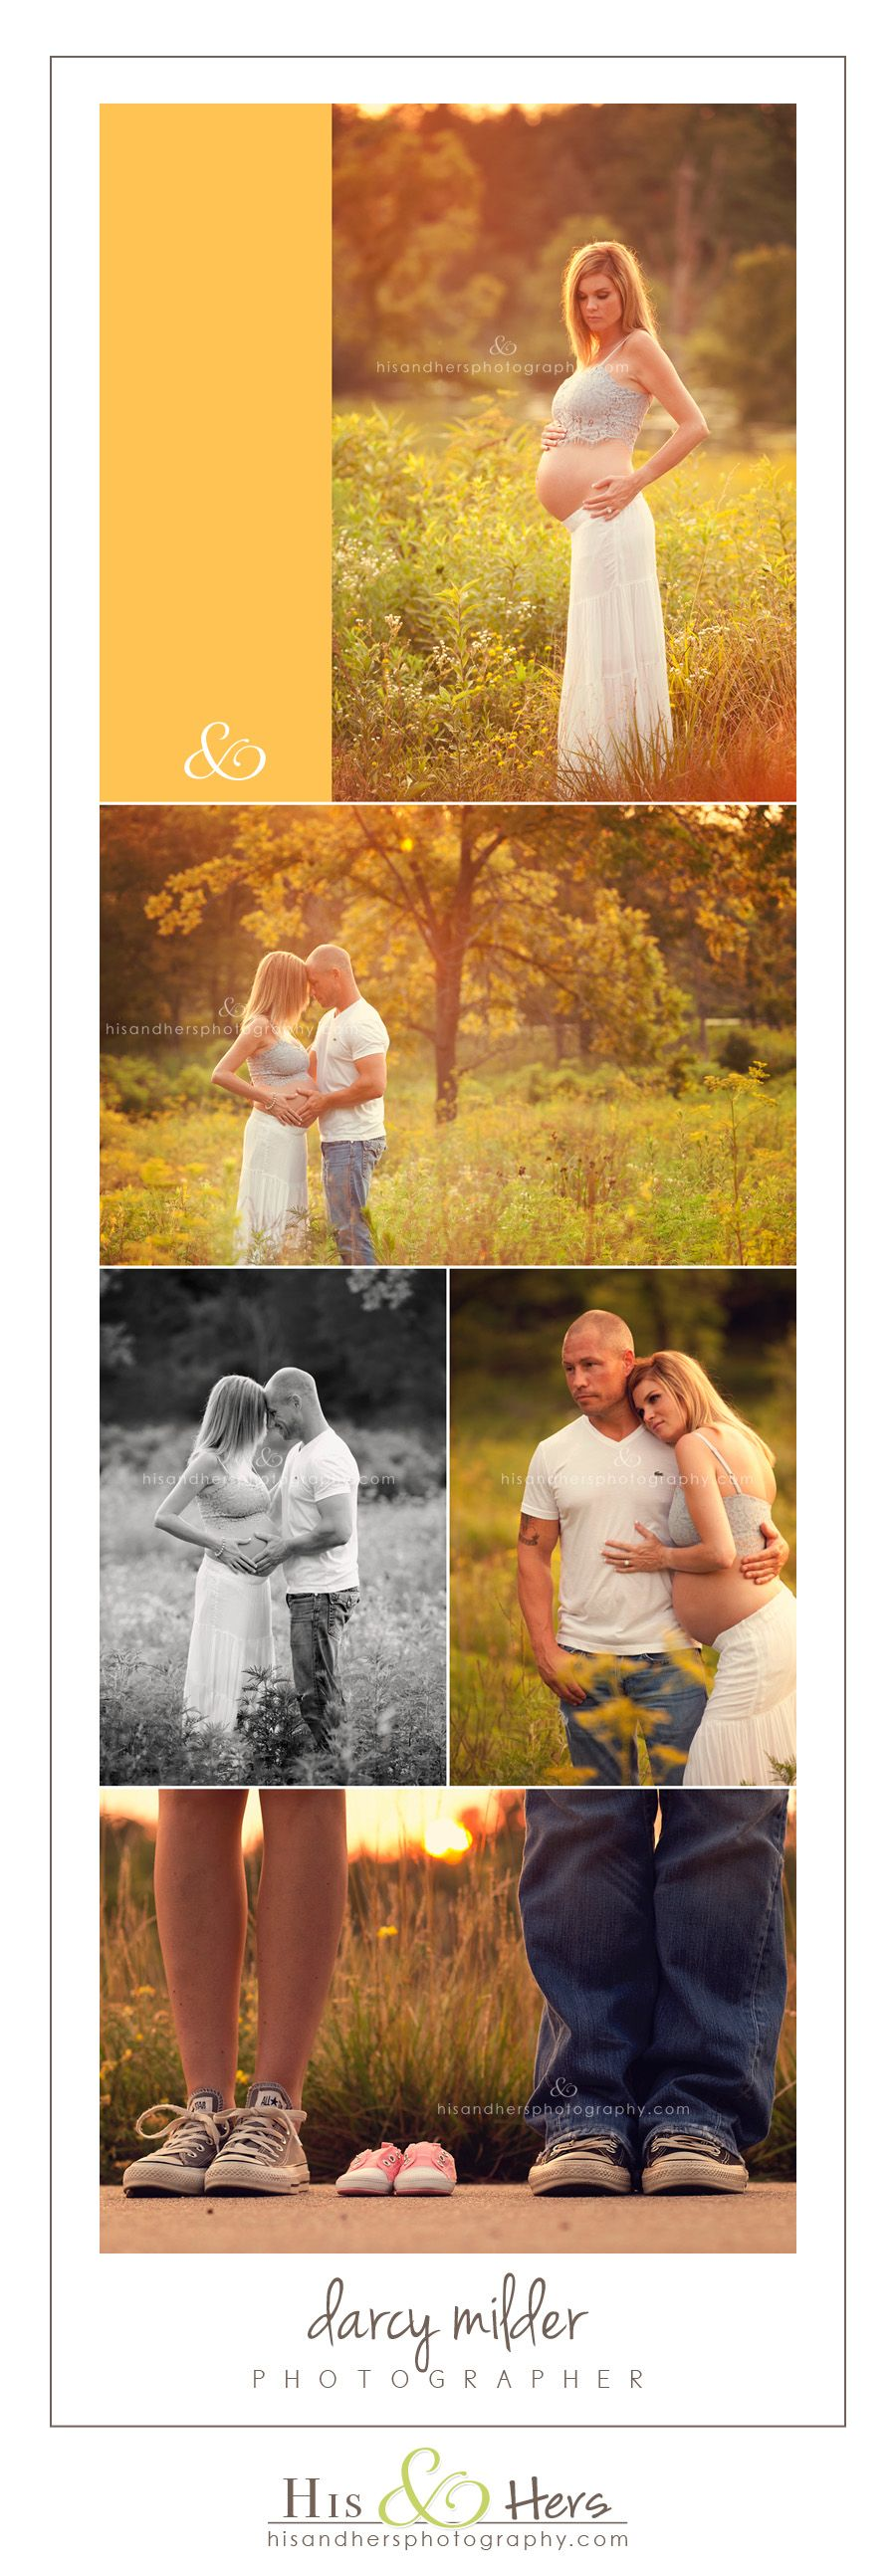 iowa maternity pregnancy photographer photography des moines iowa his & hers photography